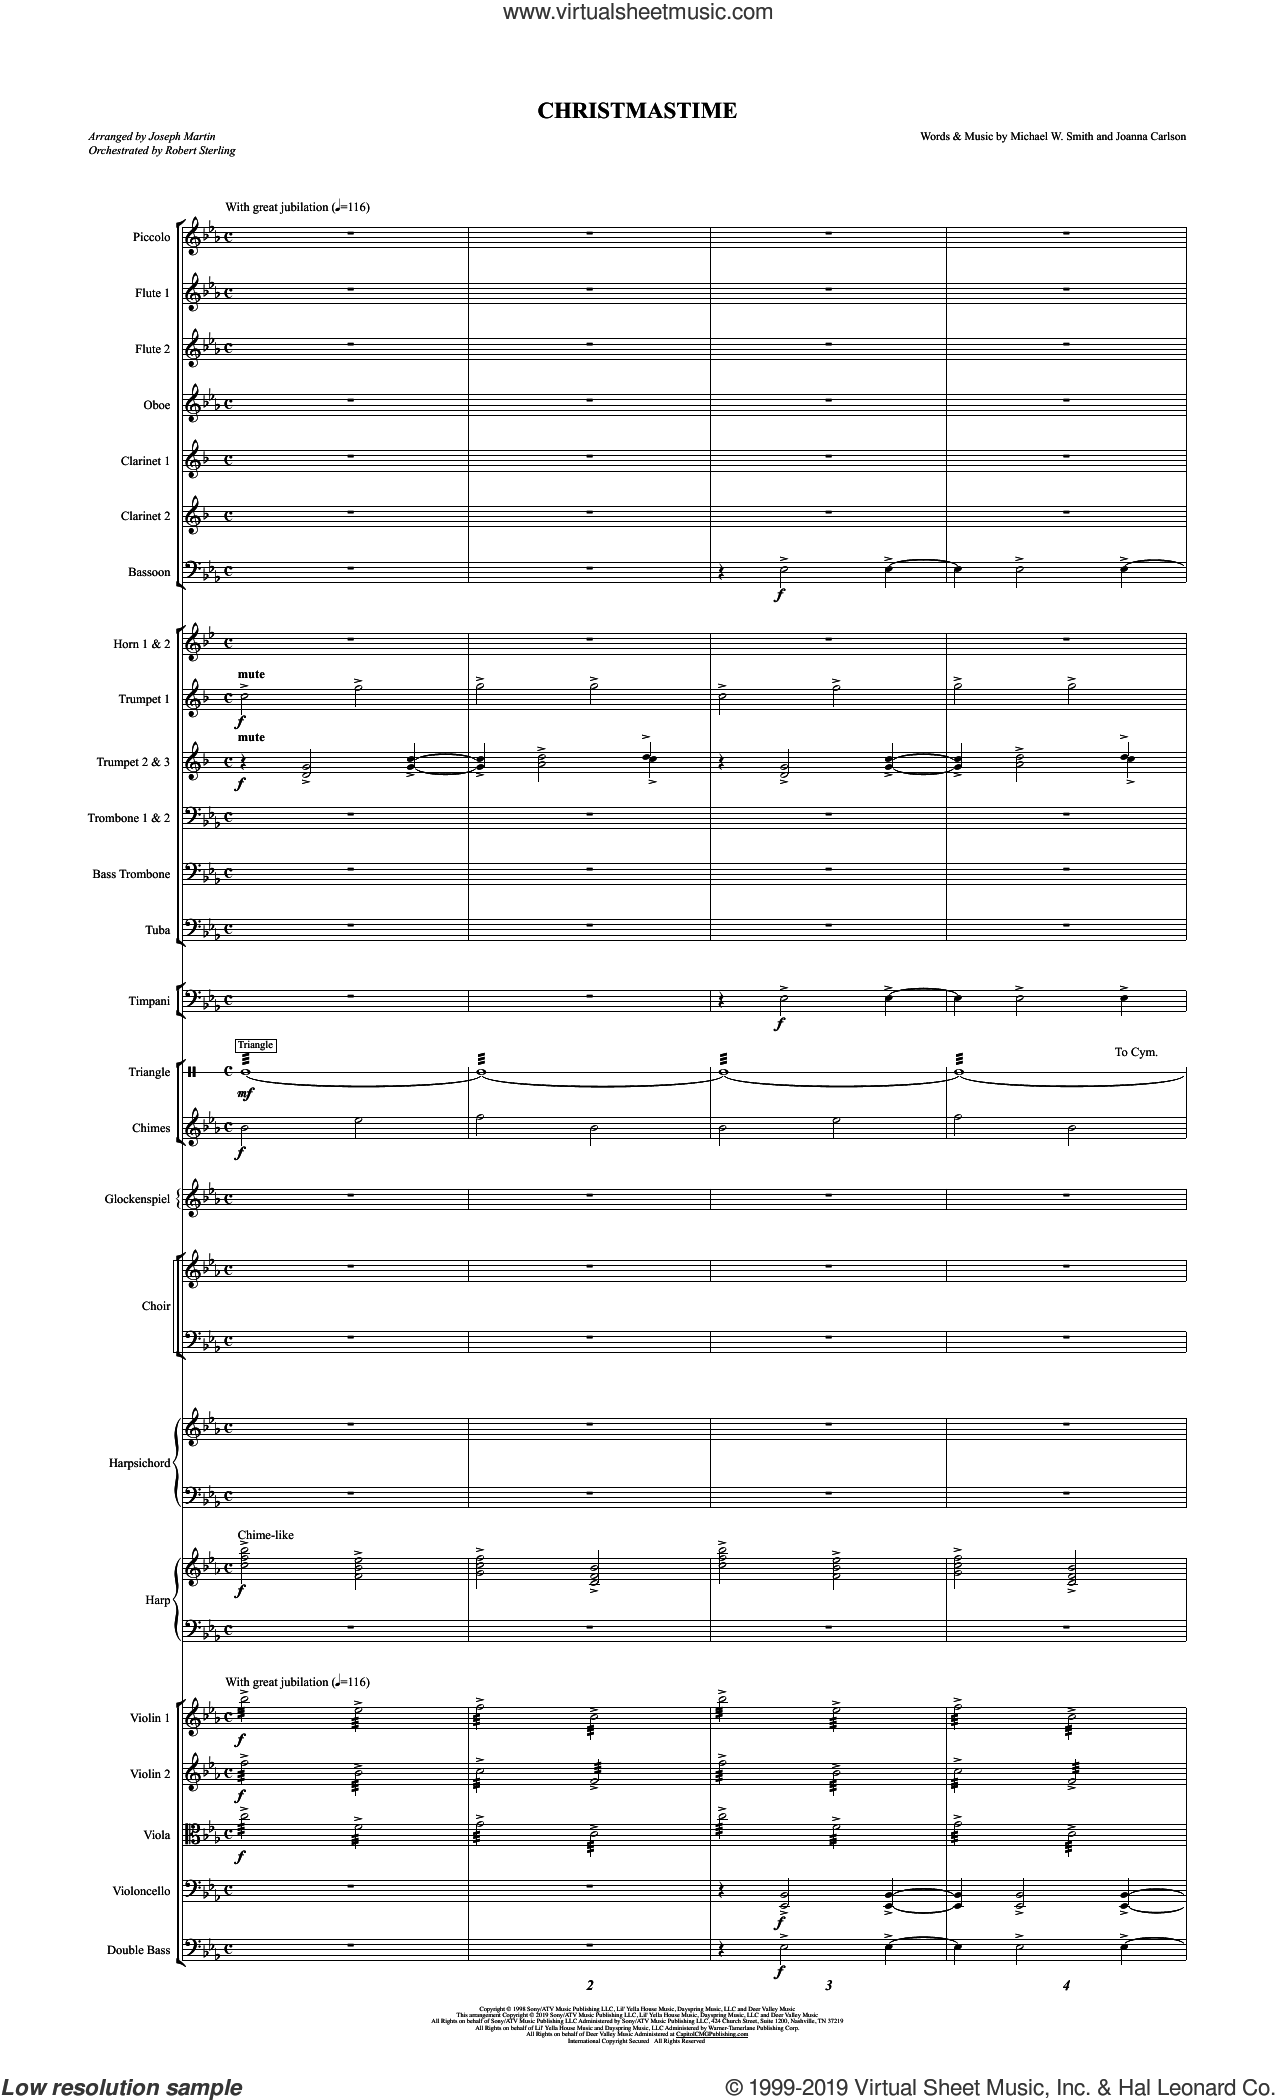 Christmastime (arr. Joseph M. Martin) (COMPLETE) sheet music for orchestra/band by Michael W. Smith & Joanna Carlson, Joanna Carlson, Joseph M. Martin and Michael W. Smith, intermediate skill level